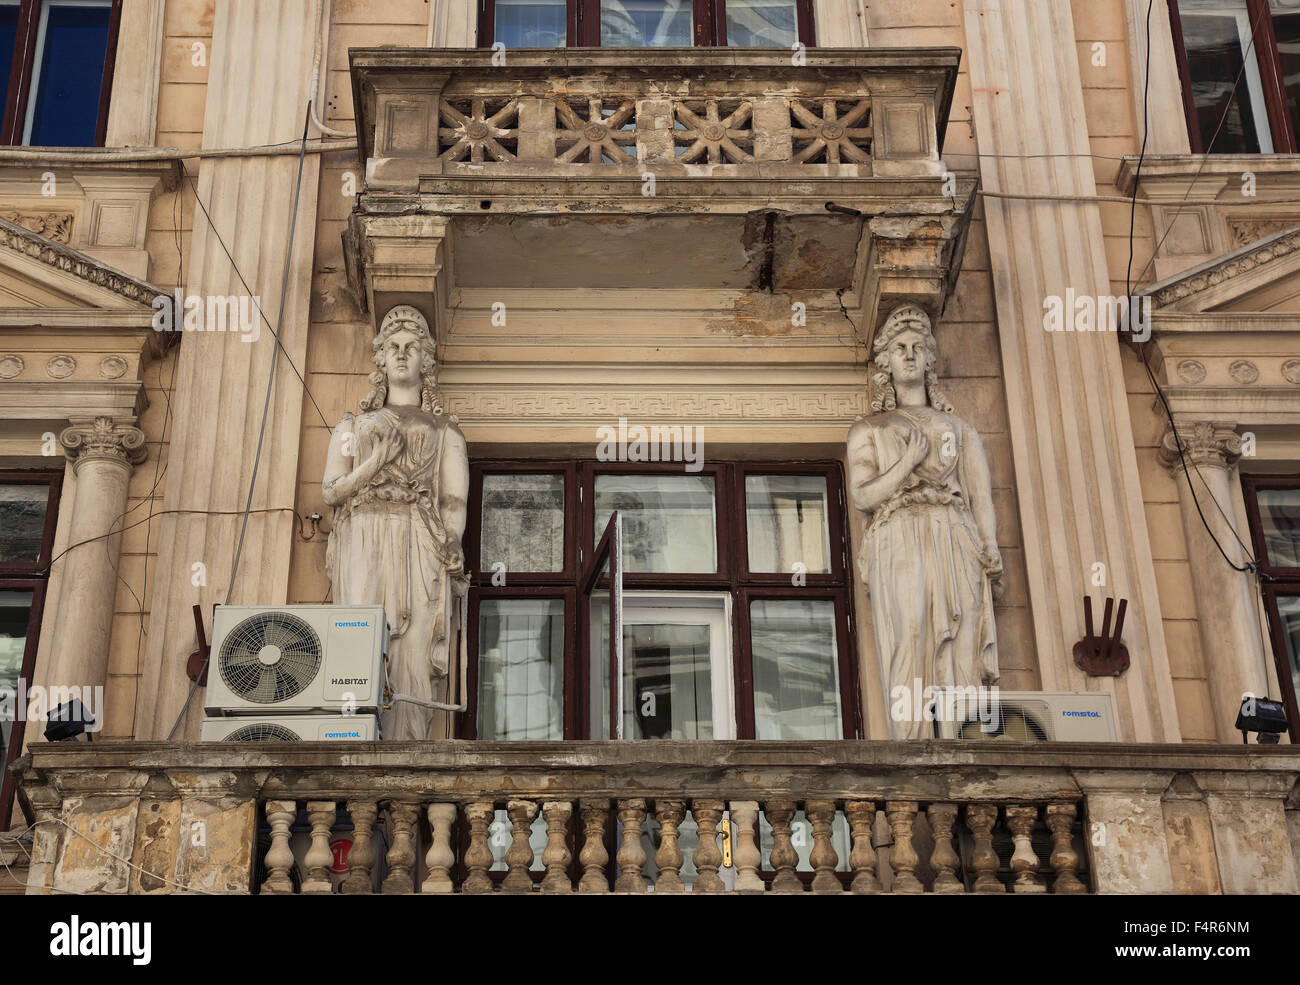 Old Town, detail of an old merchant's house, balcony, Bucharest, Romania - Stock Image